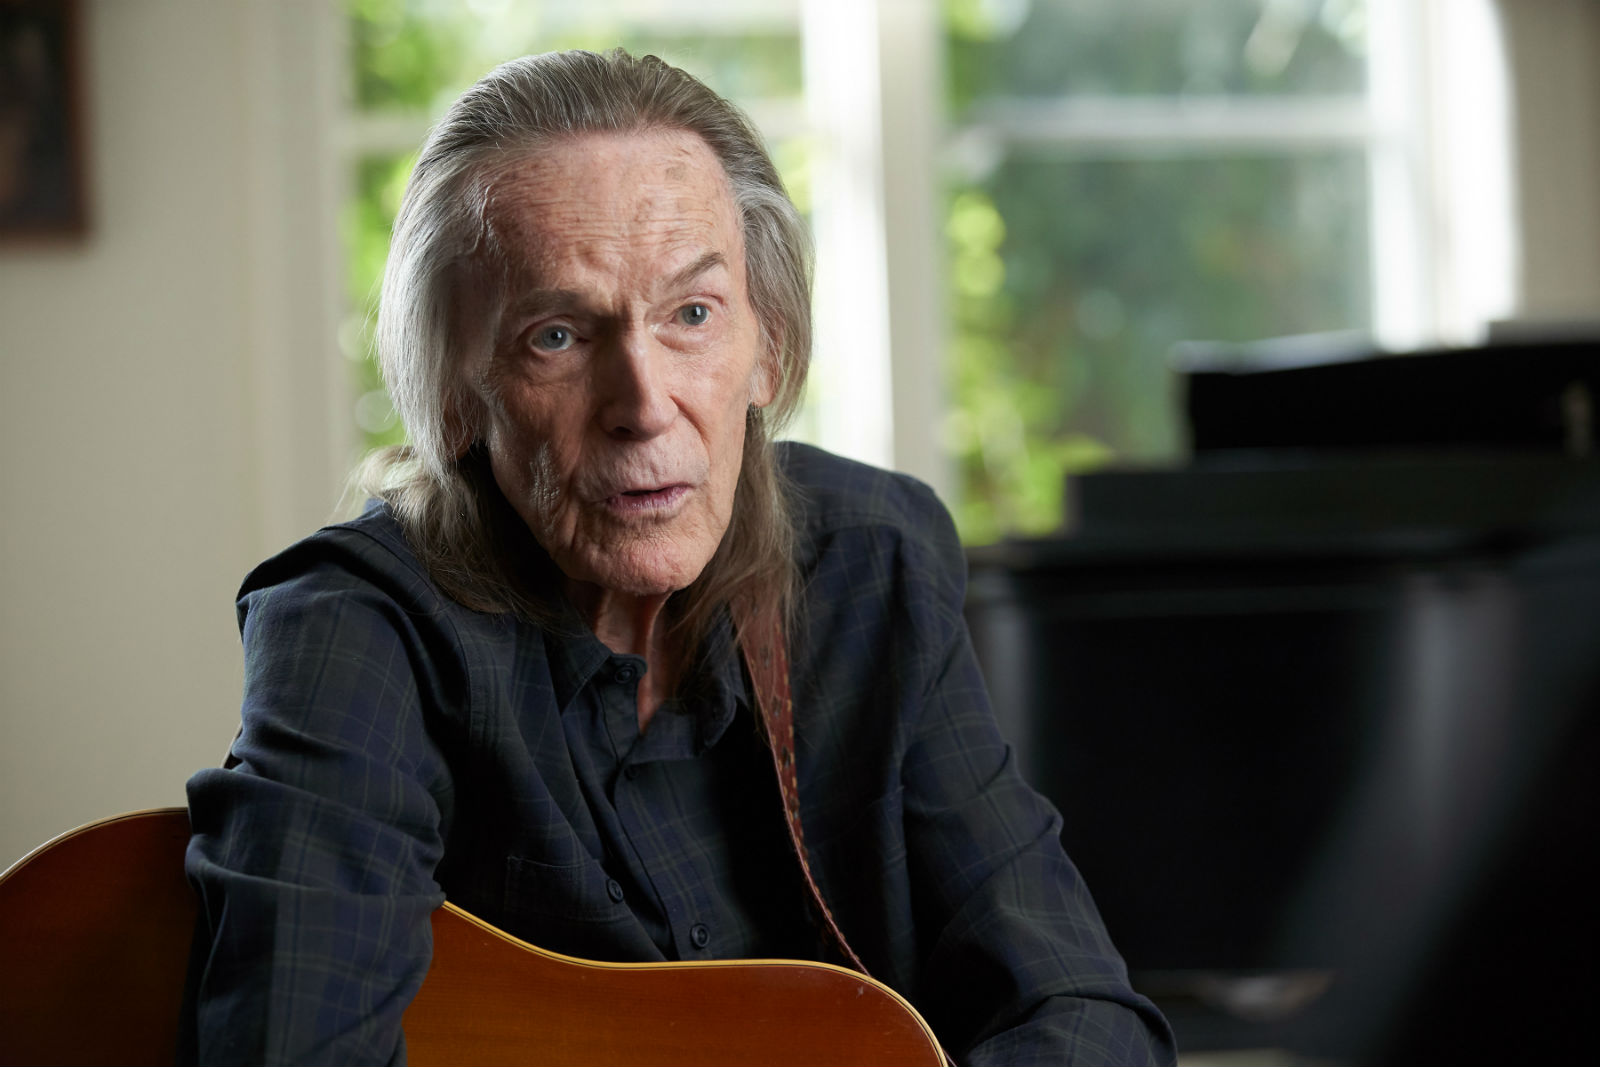 Gordon Lightfoot at 80.